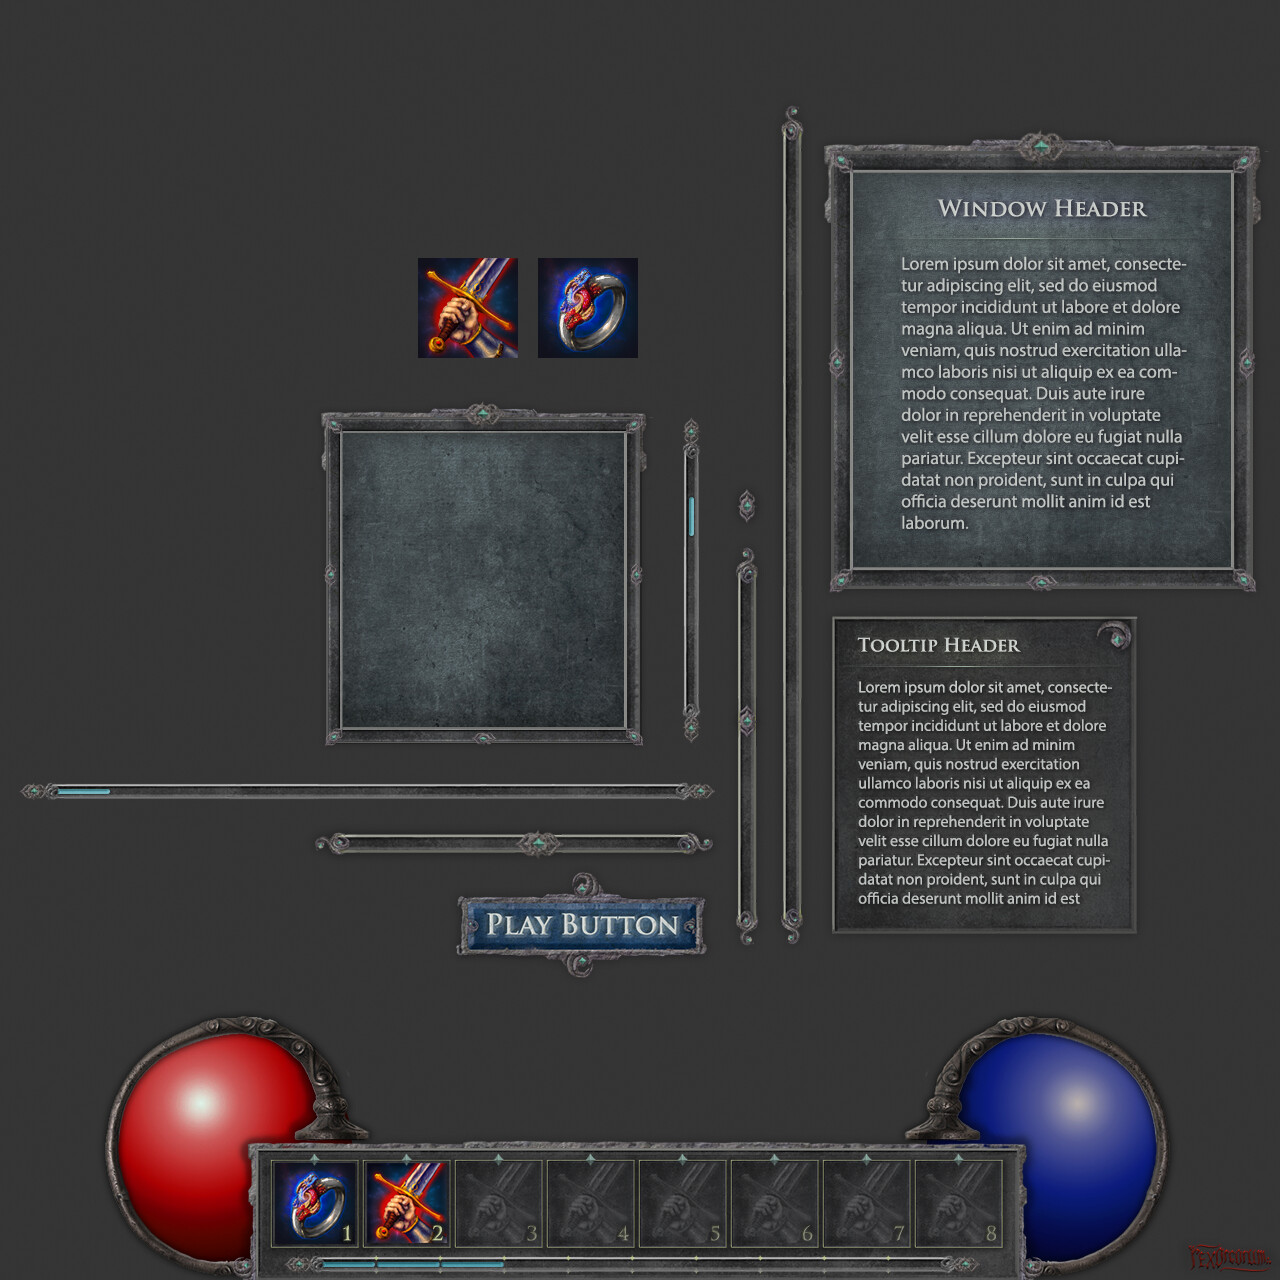 The UI Elements